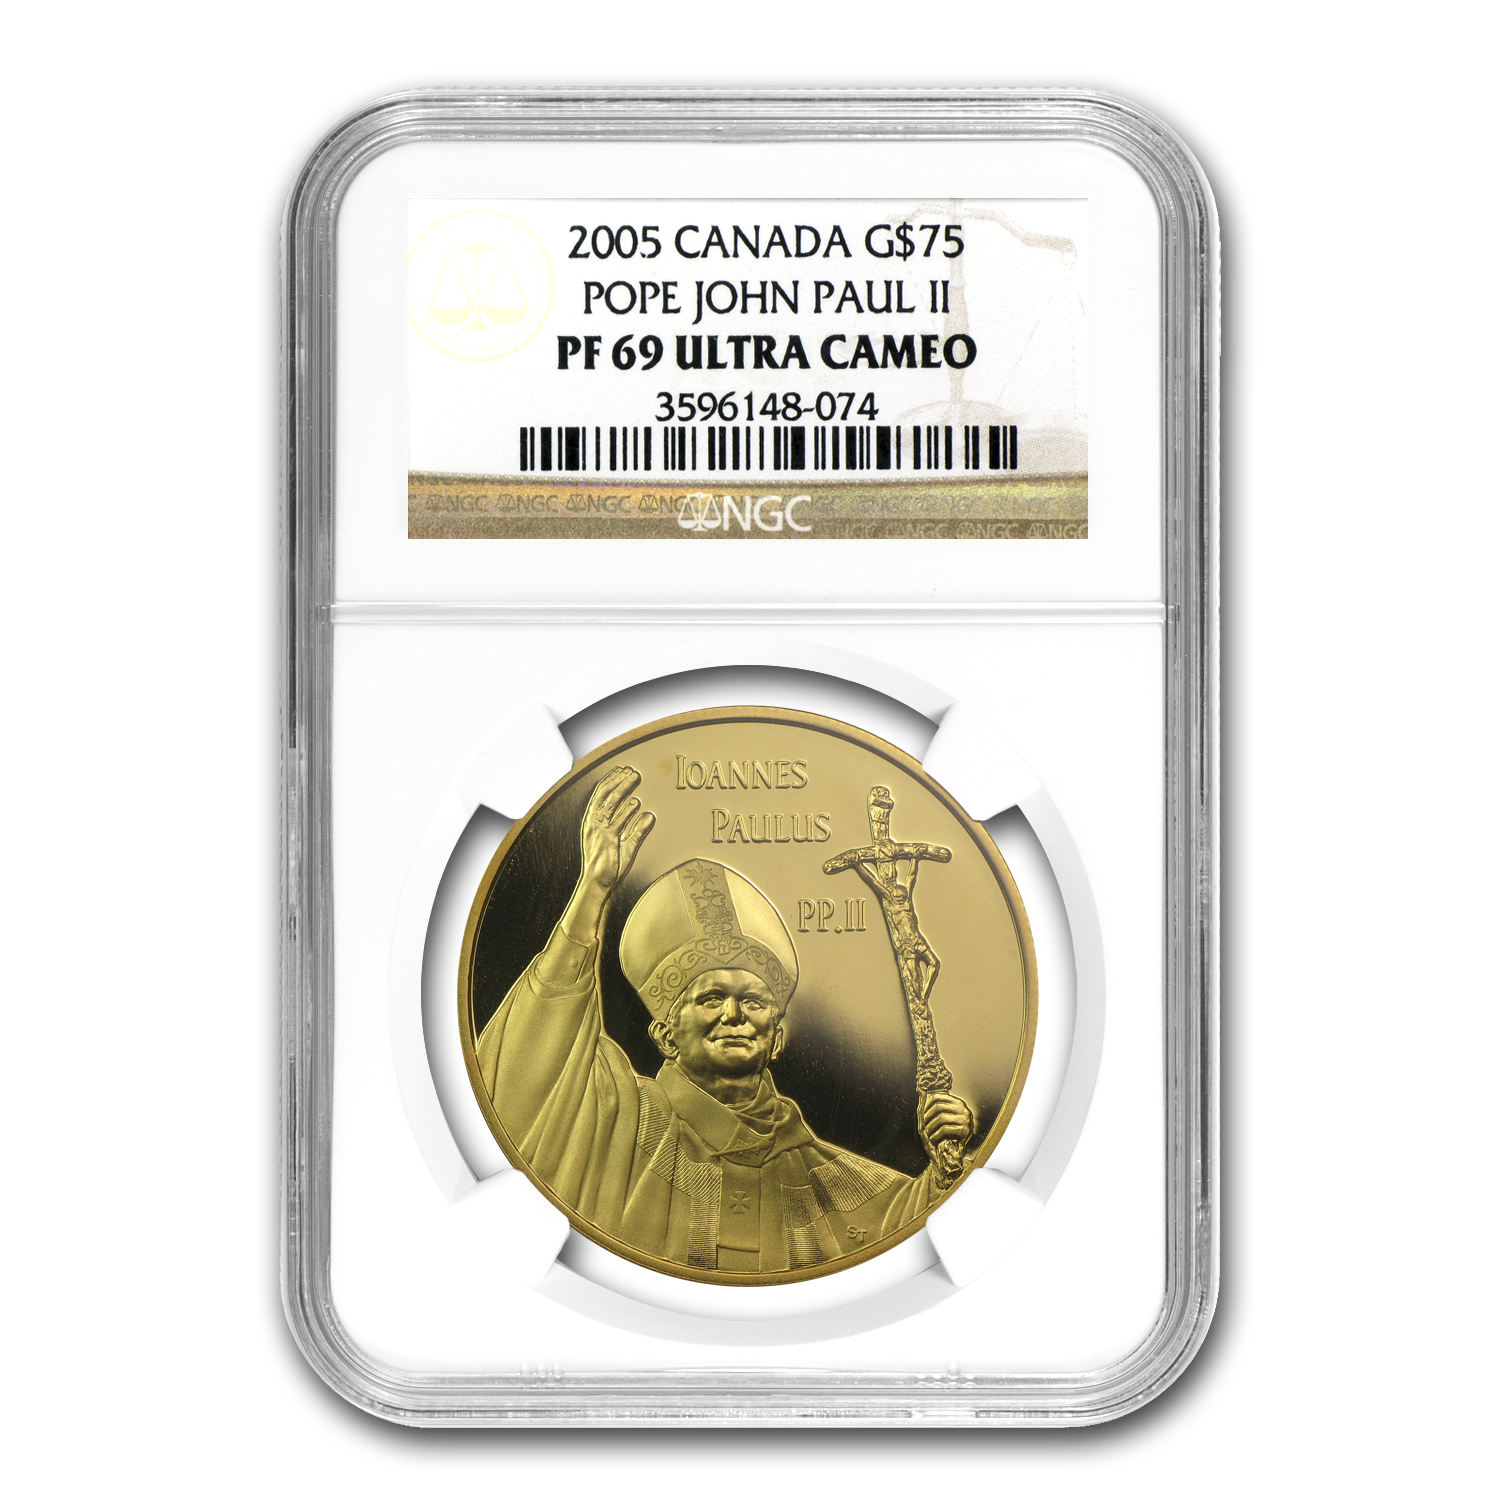 2005 Gold Canadian $75 Pope John Paul II NGC PF-69 UCAM